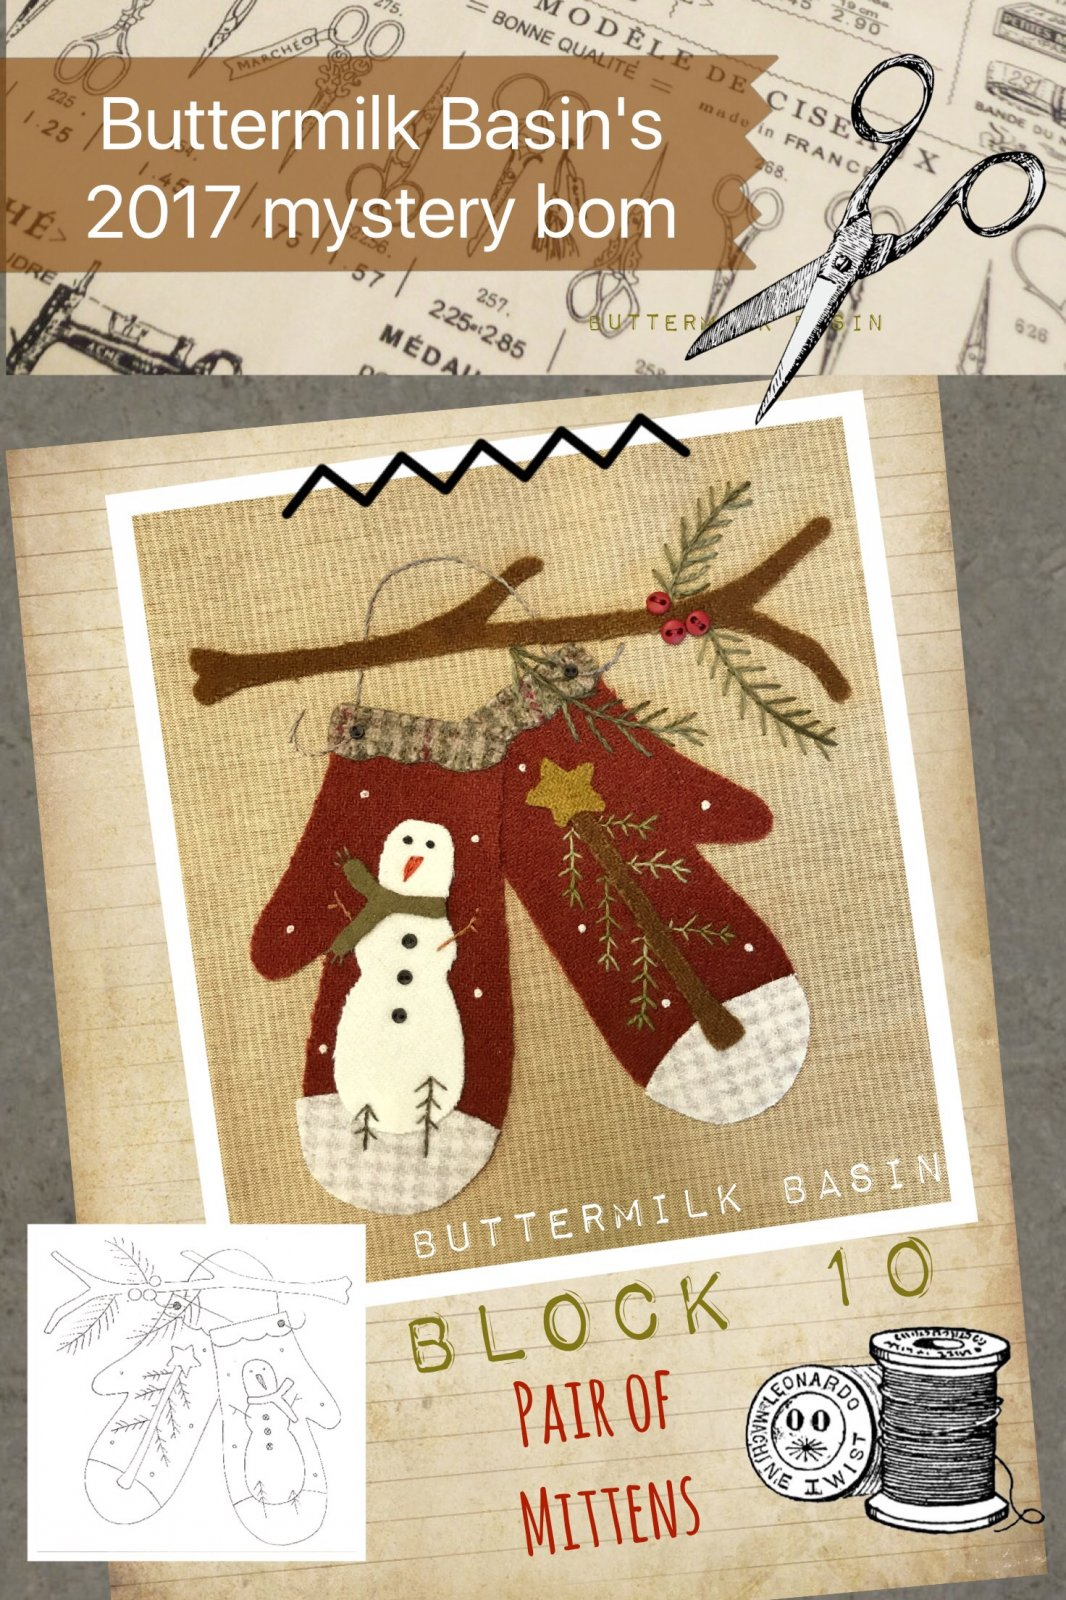 LIVE EACH SEASON Block 10 WOOL & Fabric KIT & Pattern